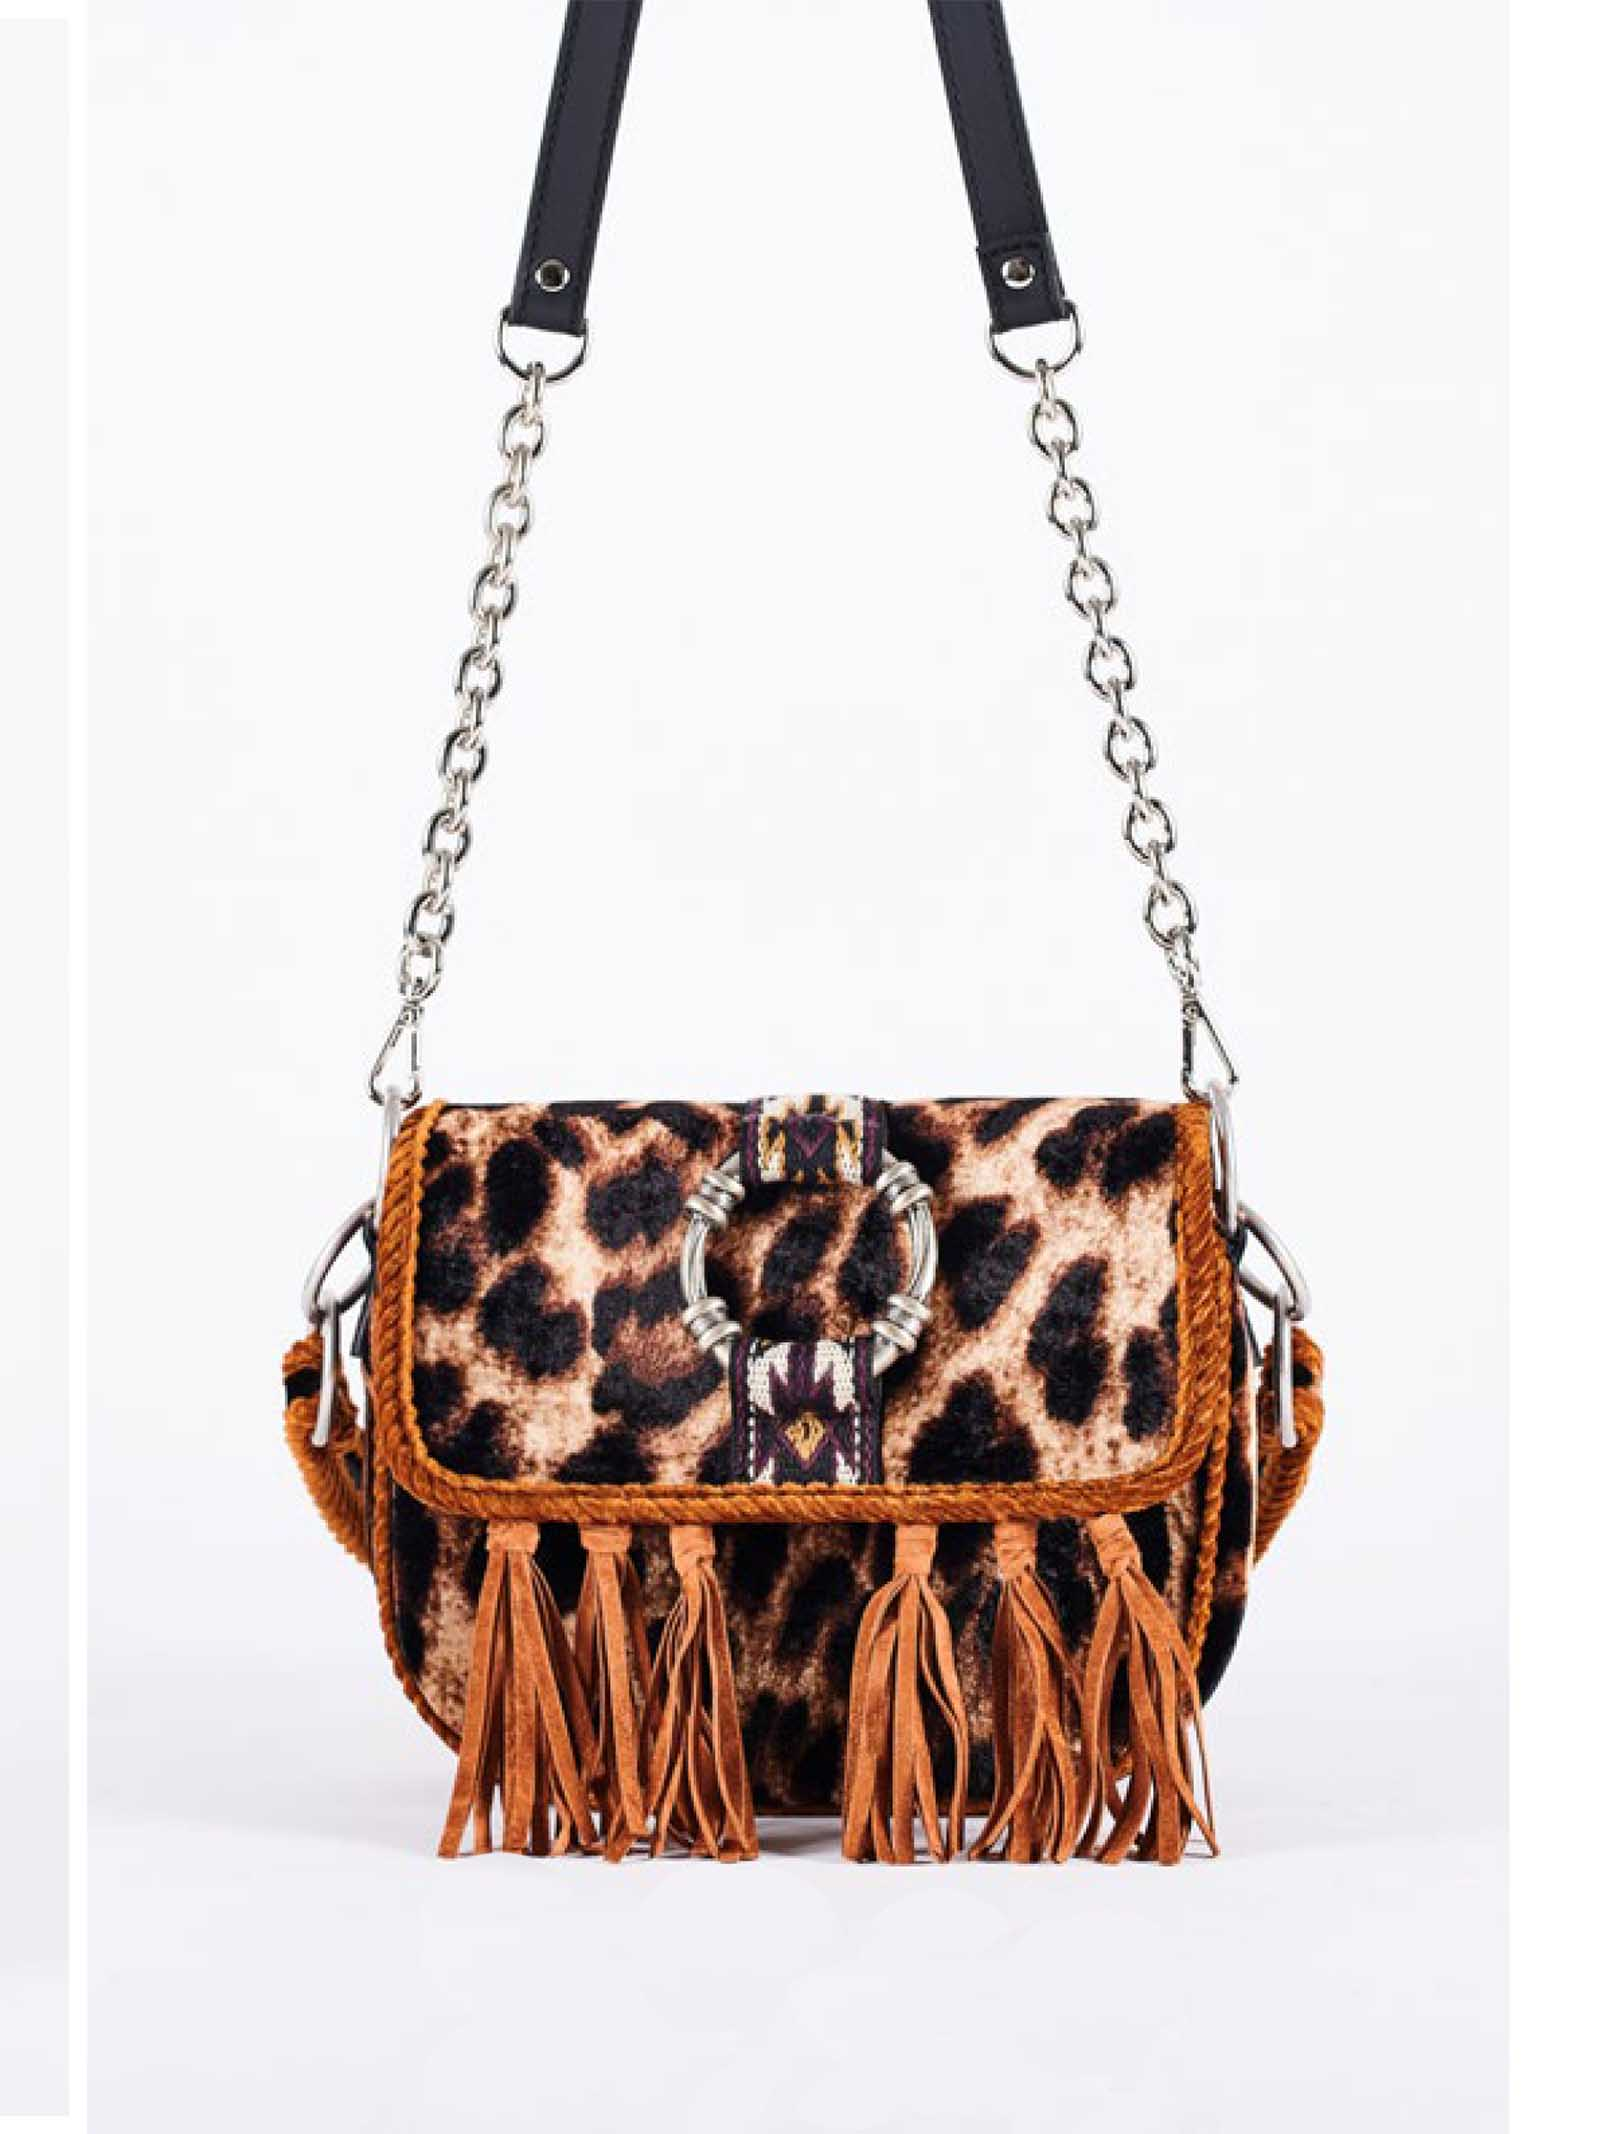 Women's Shoulder Clutch Bag Patty Leo in Leopard Animalier Silk Velvet And Shoulder Strap with Chain Via Mail Bag | Bags and backpacks | PATTYLEO